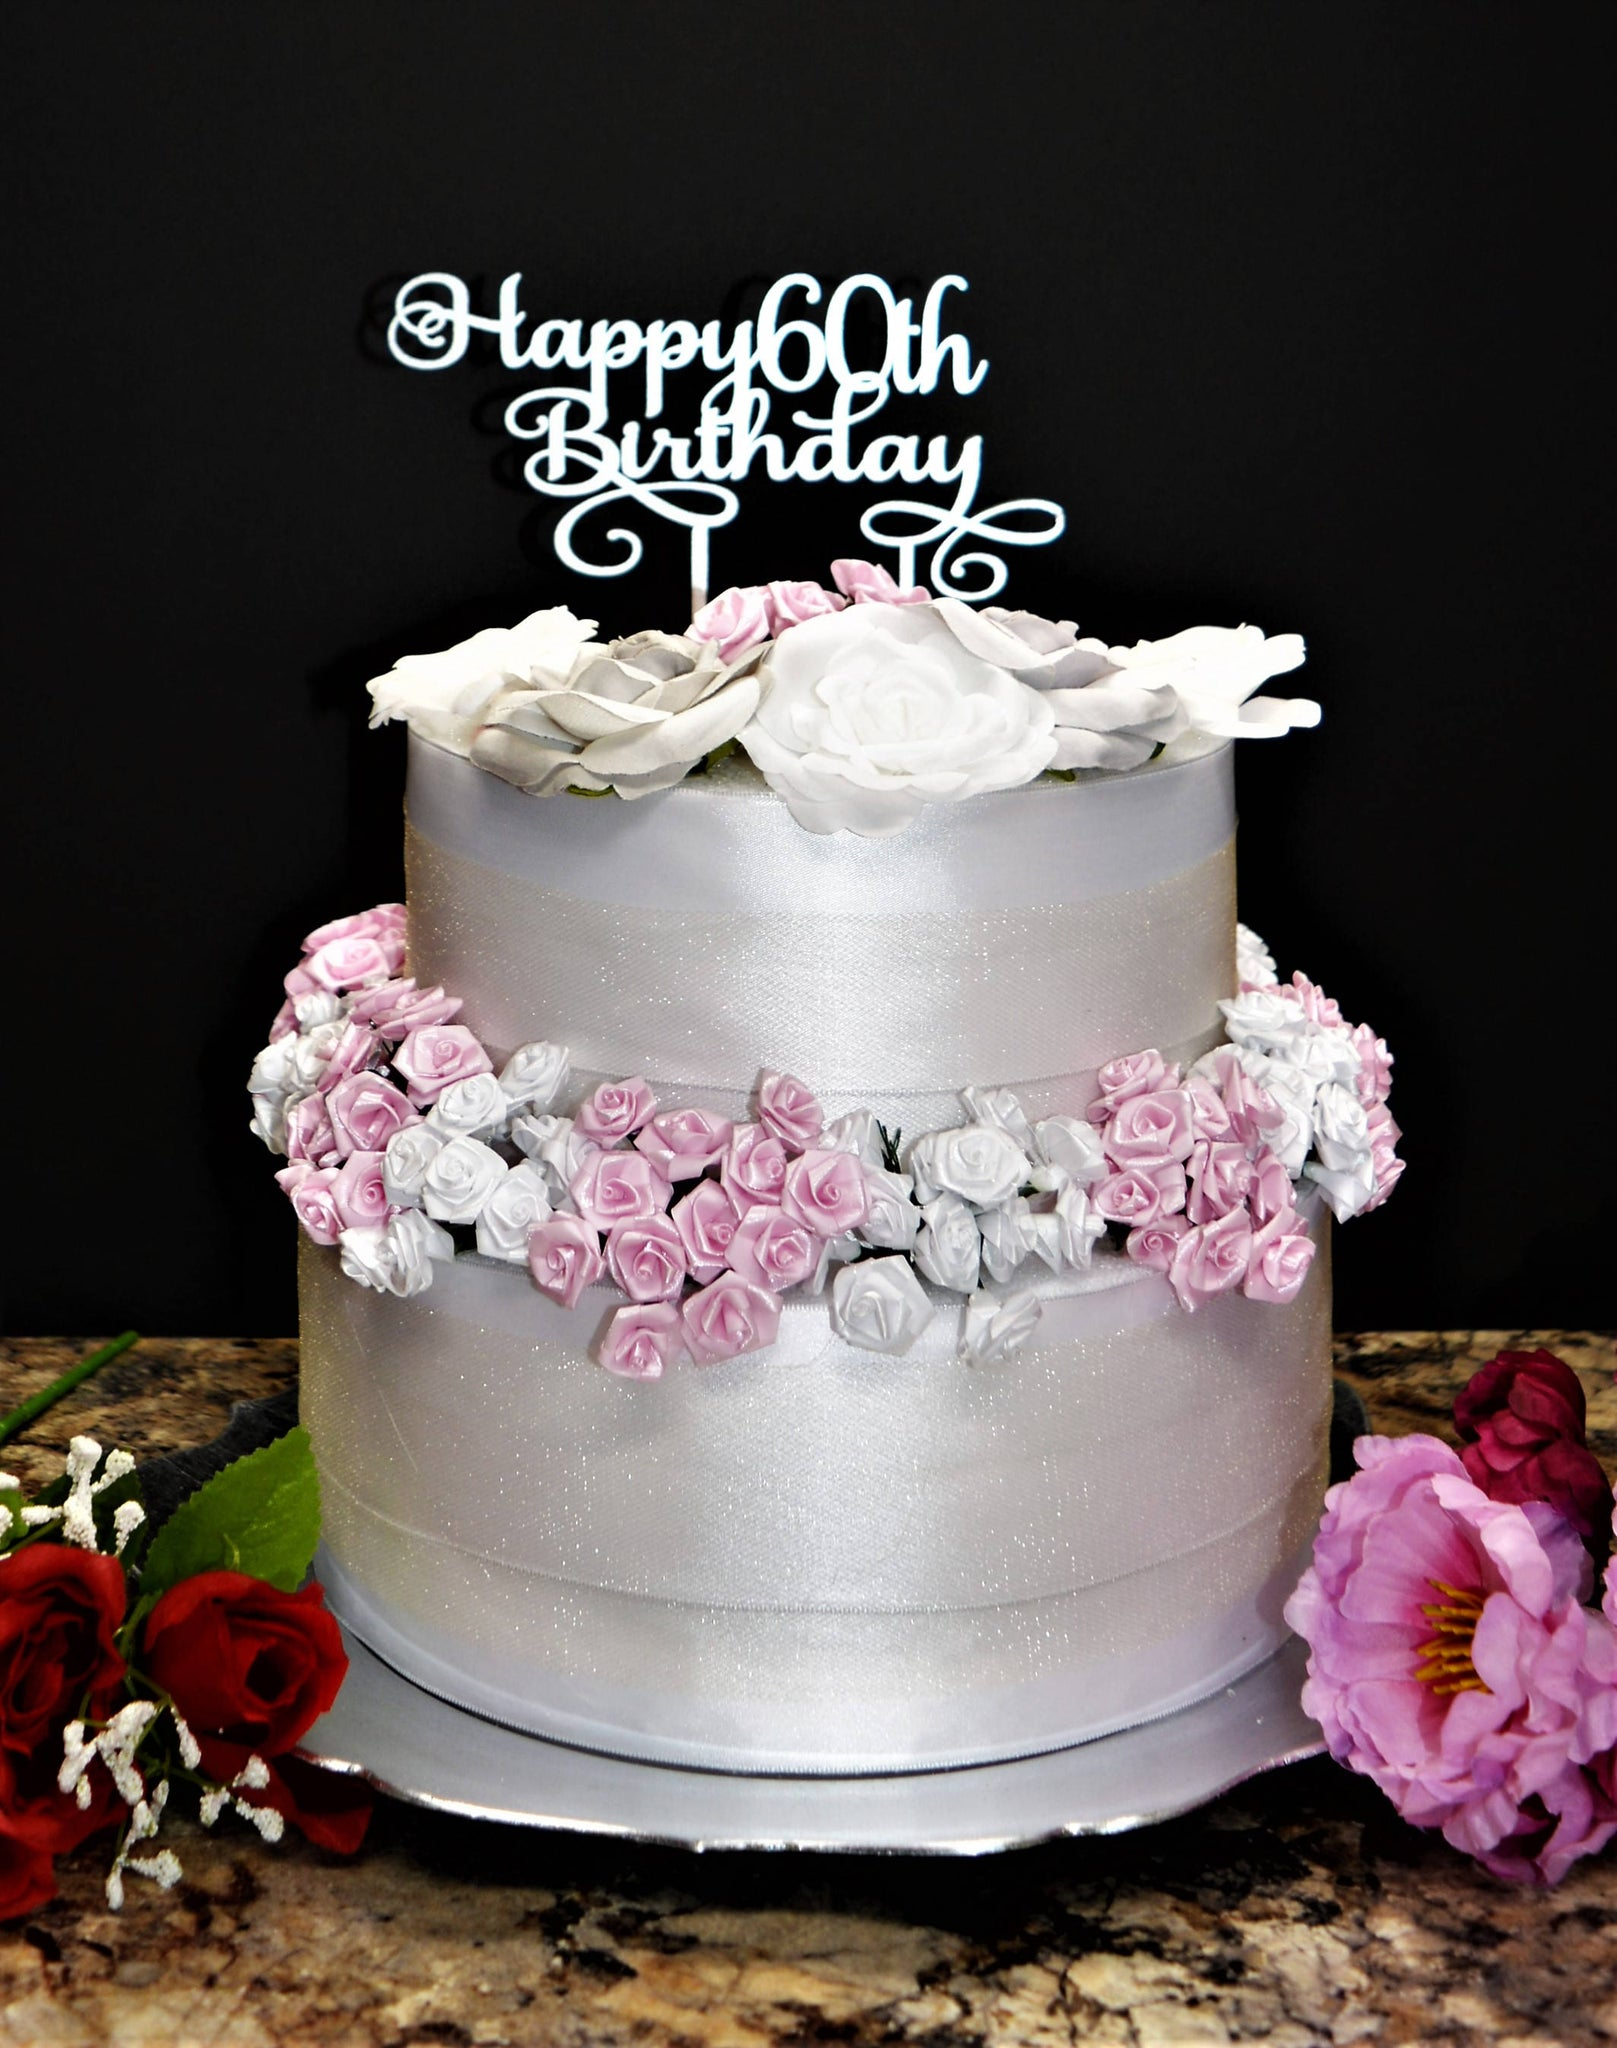 Wondrous 60Th Birthday Cake Decoration Pink White Shoe With Crystal Birthday Cards Printable Riciscafe Filternl